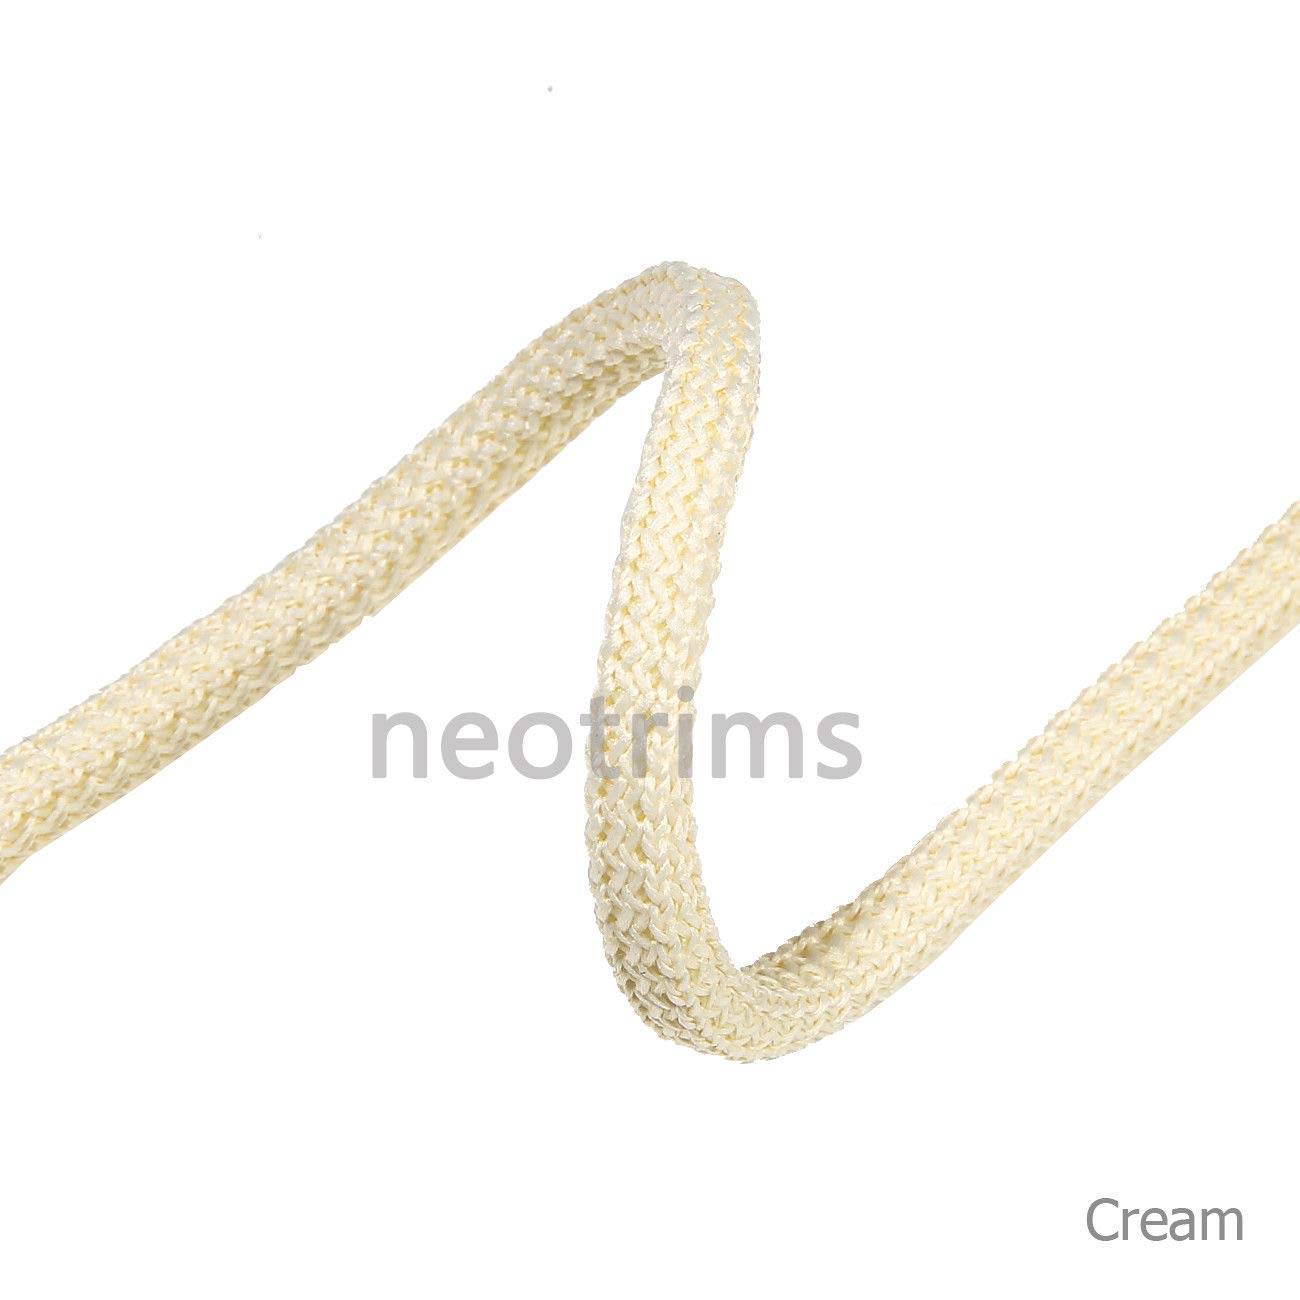 6mm Cushion Piping Drawstring Hoodie Braided Cord Rope Trim 21 Colours Strong,Slight Stretch,Soft Handle,Neotrims Padded Square i Cord Texture,Hoody Trimming,Sweatshirts,Garments,Apparel Crafts